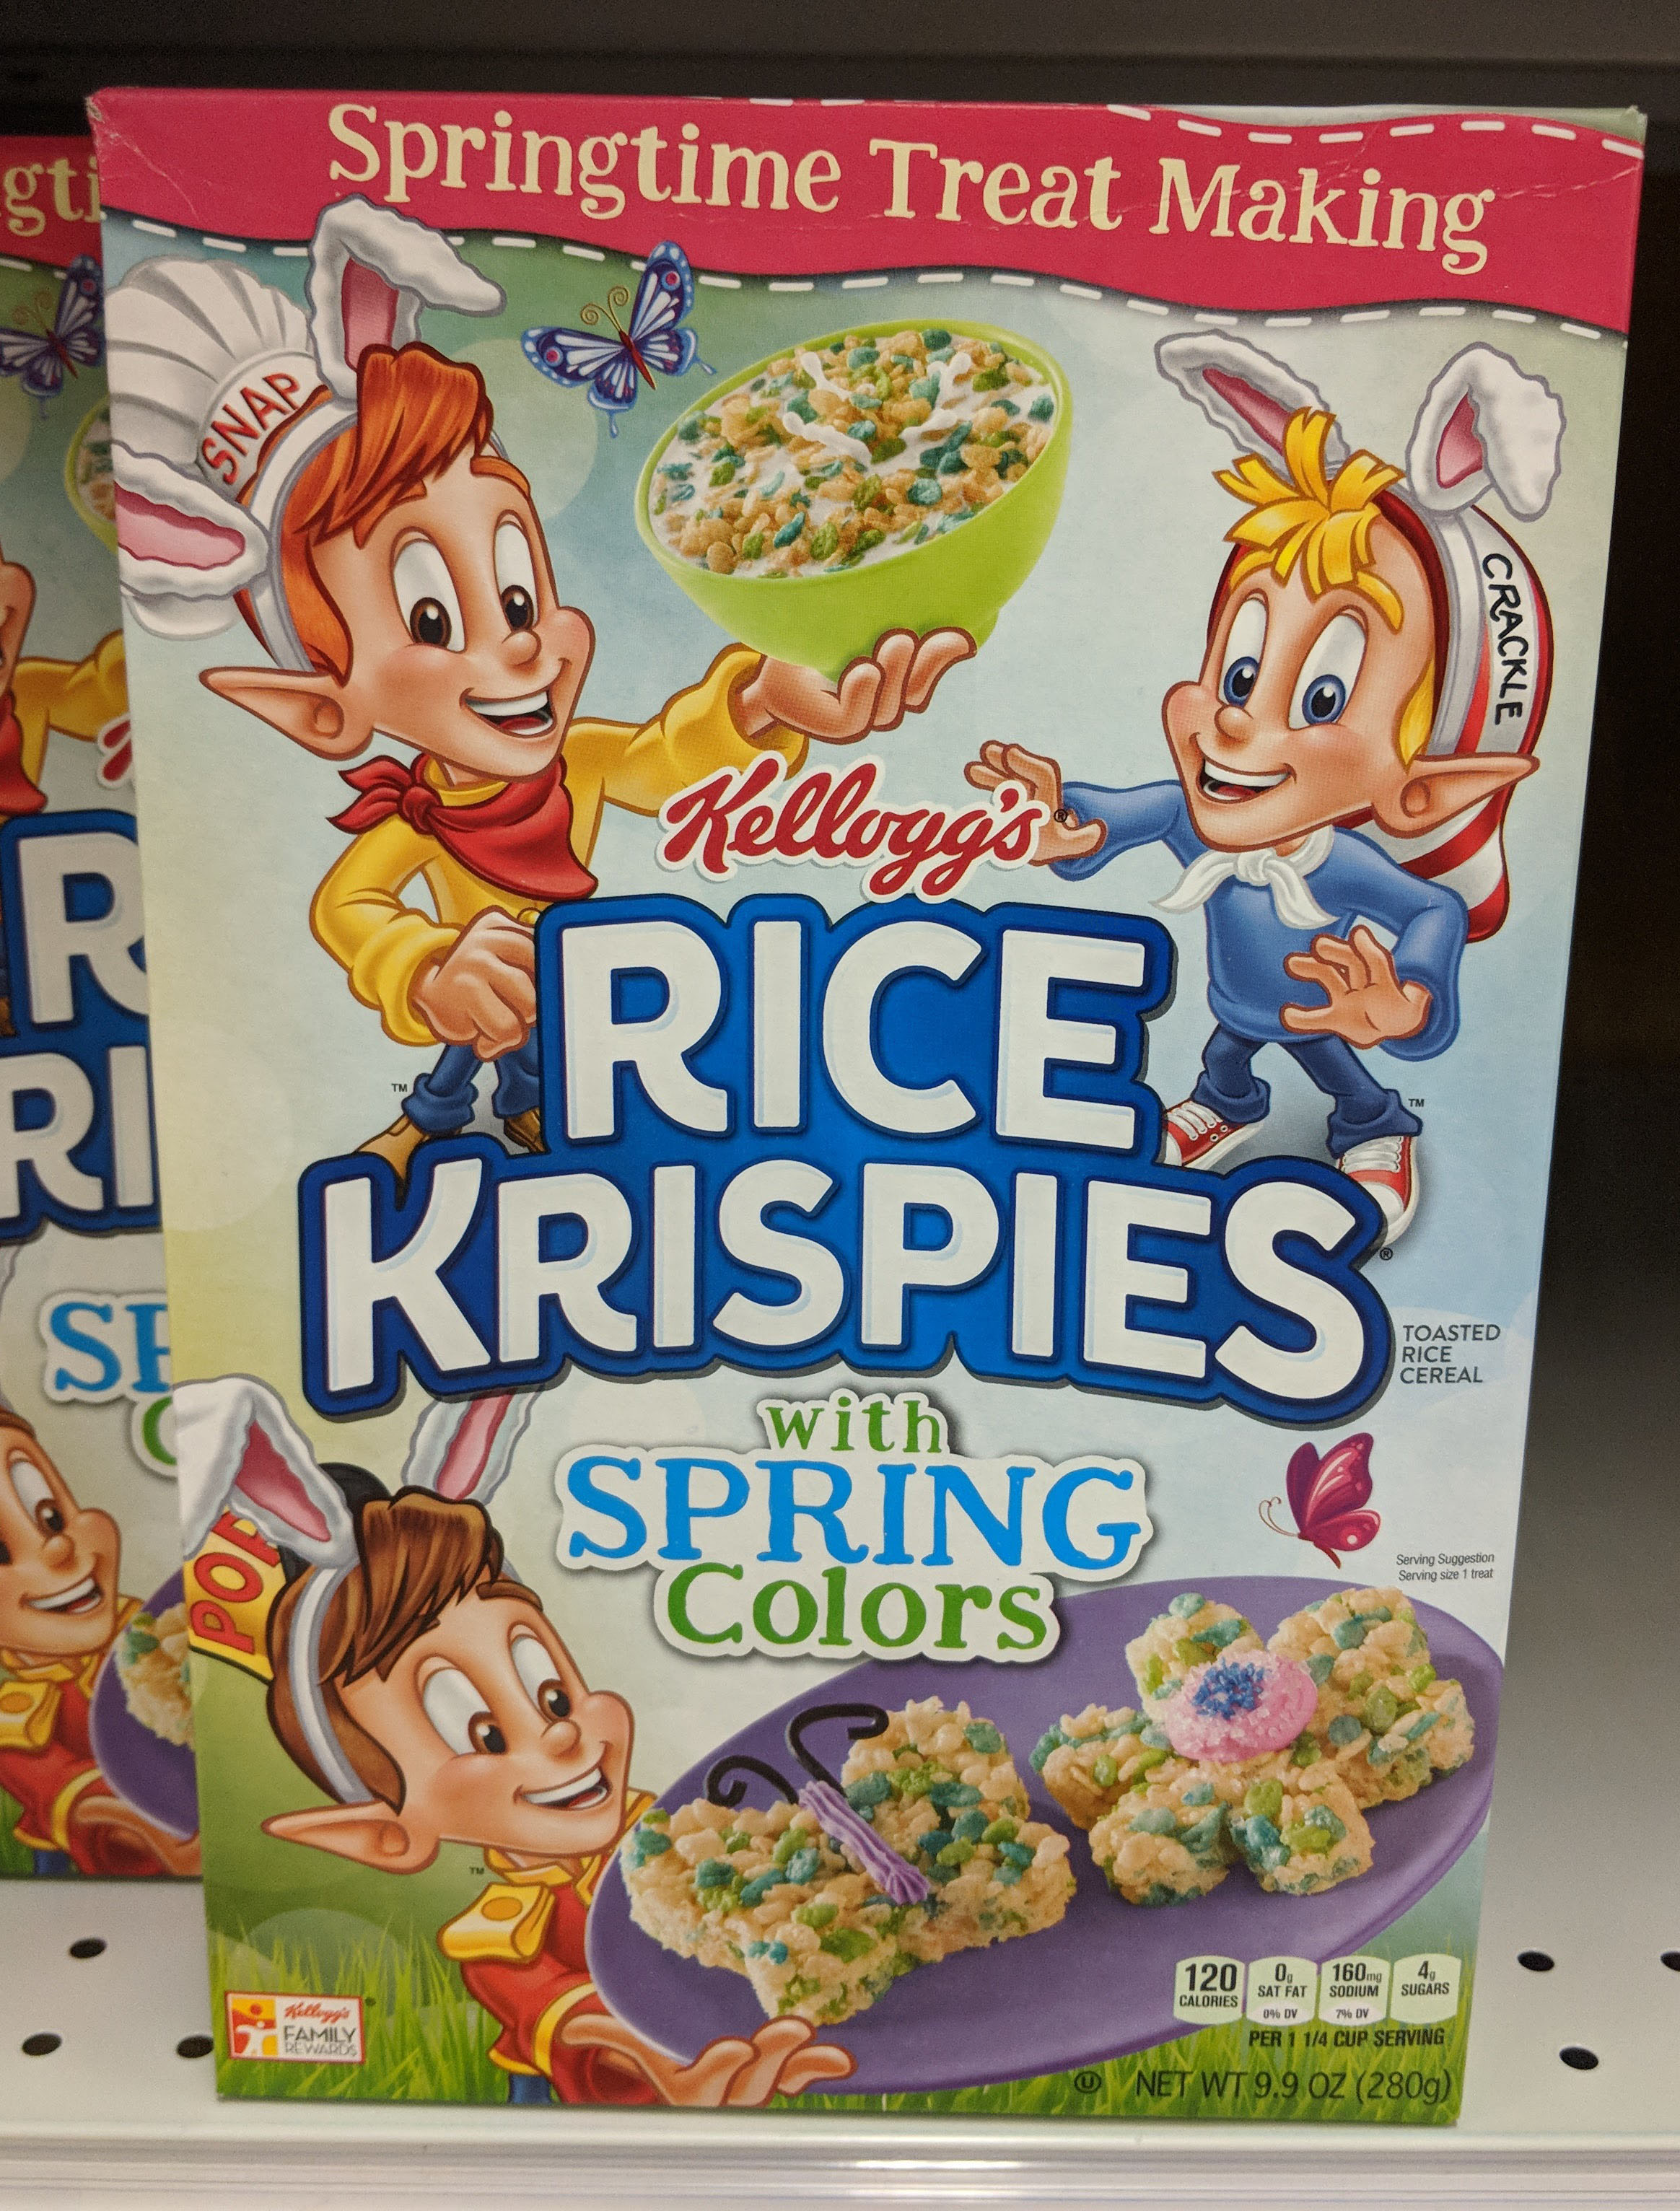 Rice krispies cerealously spring rice krispies cereal ccuart Gallery